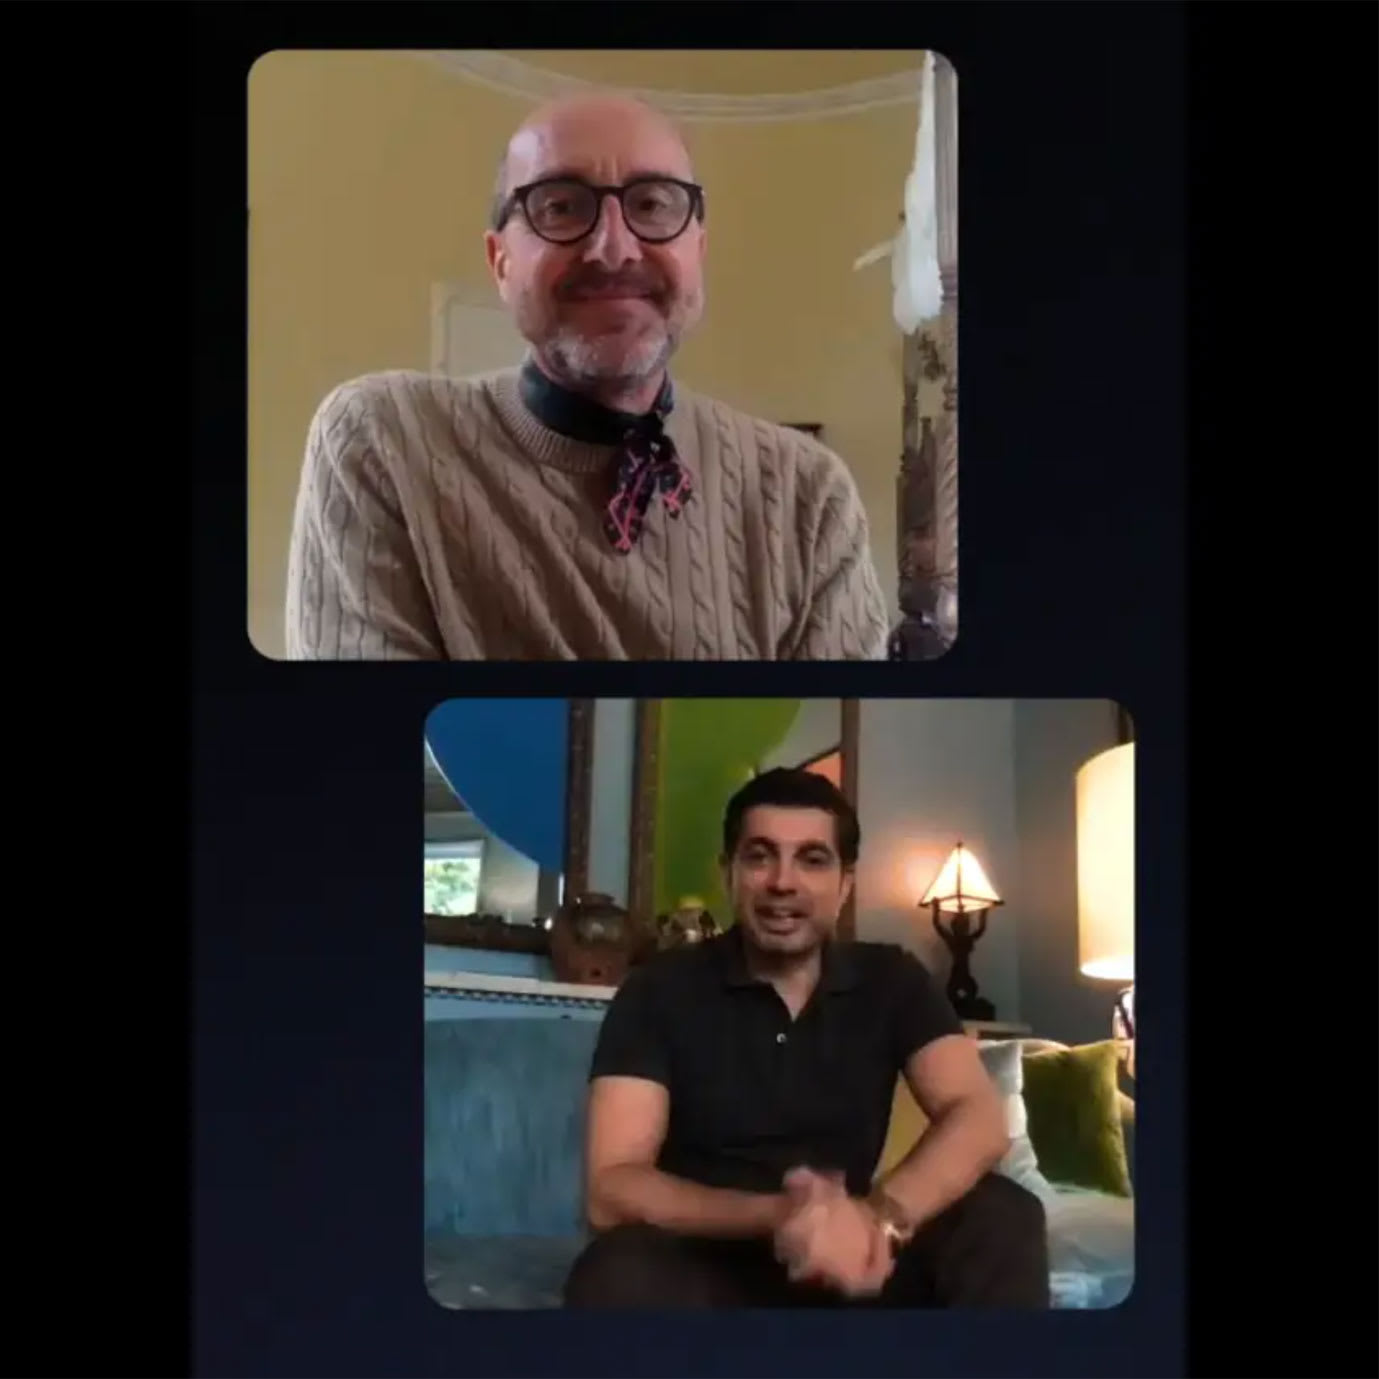 Two men on a video call.